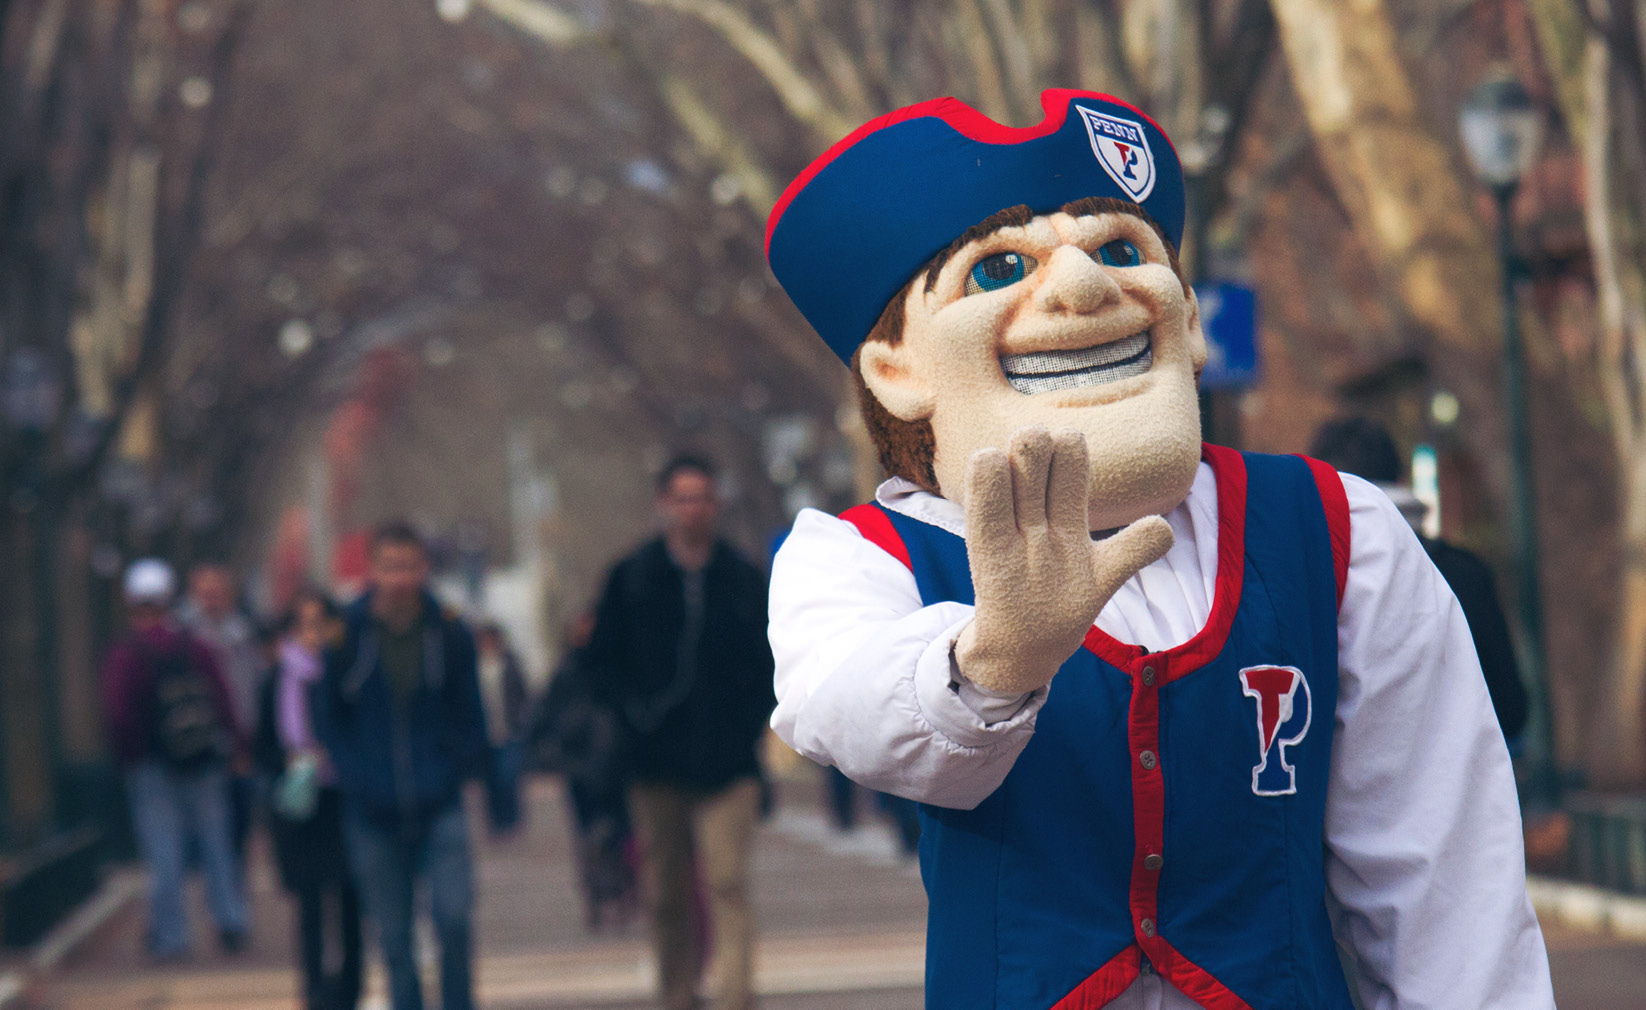 The University of Pennsylvania mascot, the Quaker, strolls through West Philadelphia.